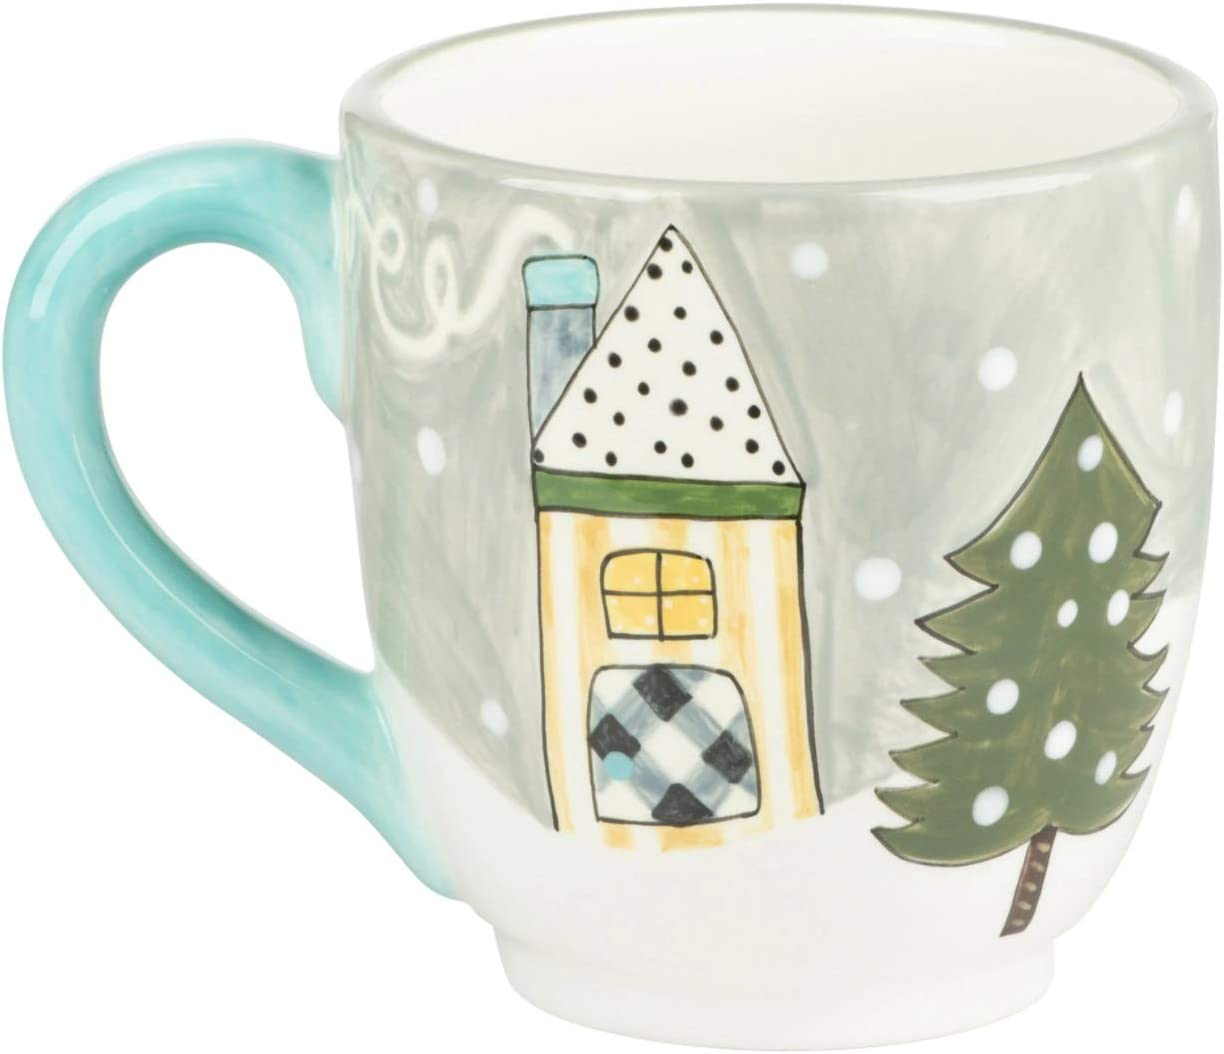 Glory Haus - Christmas Holiday Mug, Hand Painted, Ceramic (Chilly Weather Cozy Home)